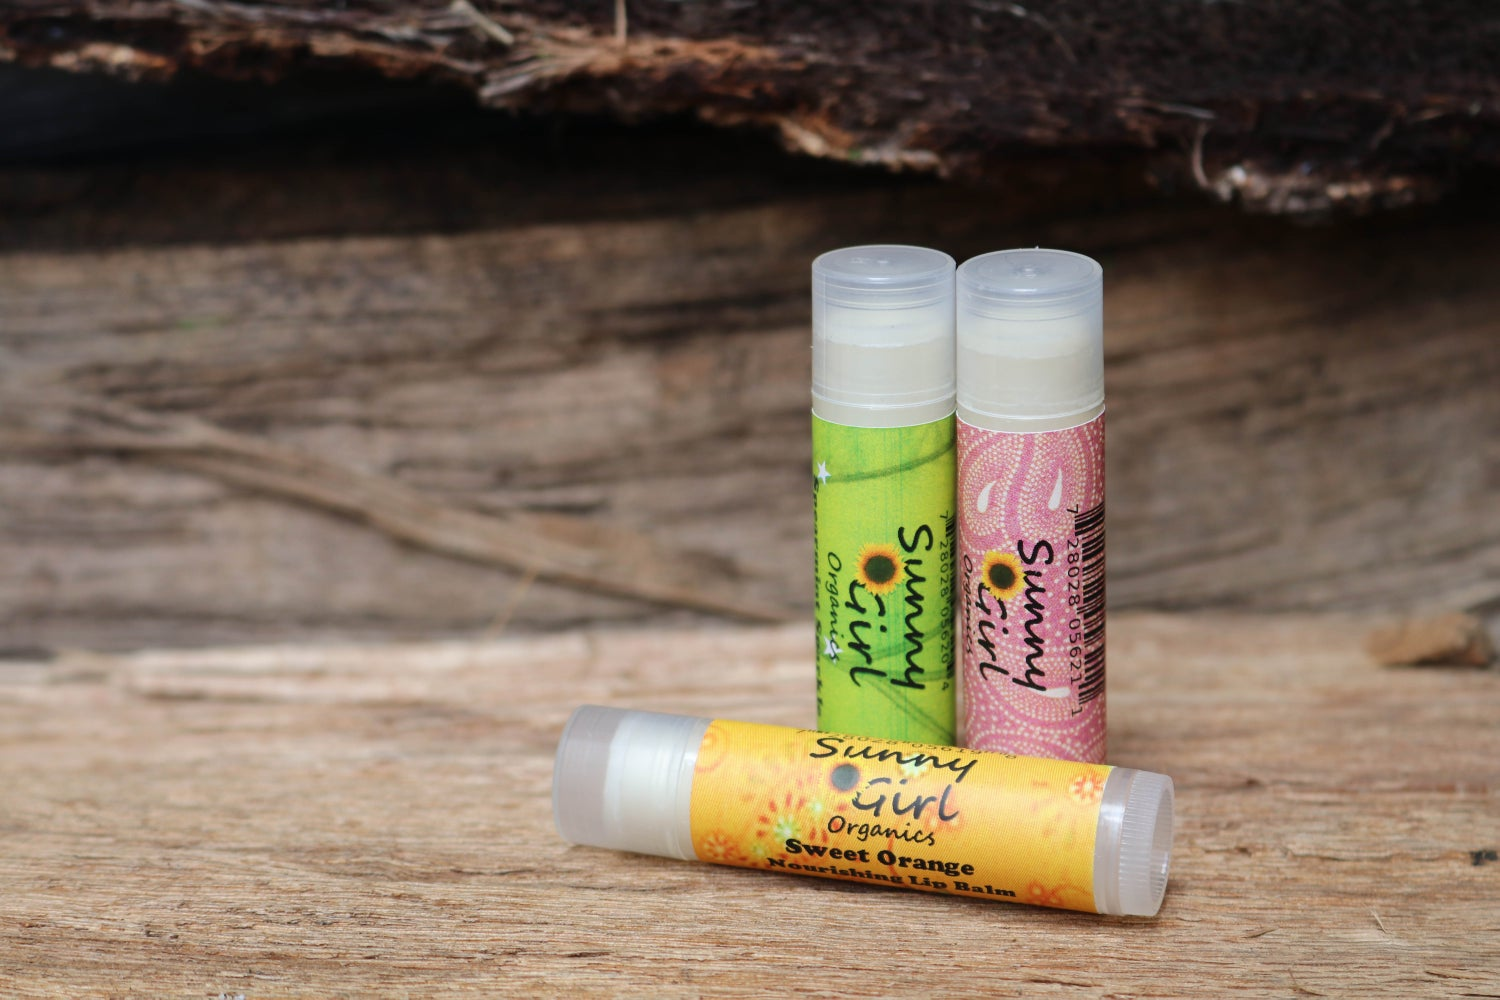 Image of Organic Sweet Orange Lip Balm